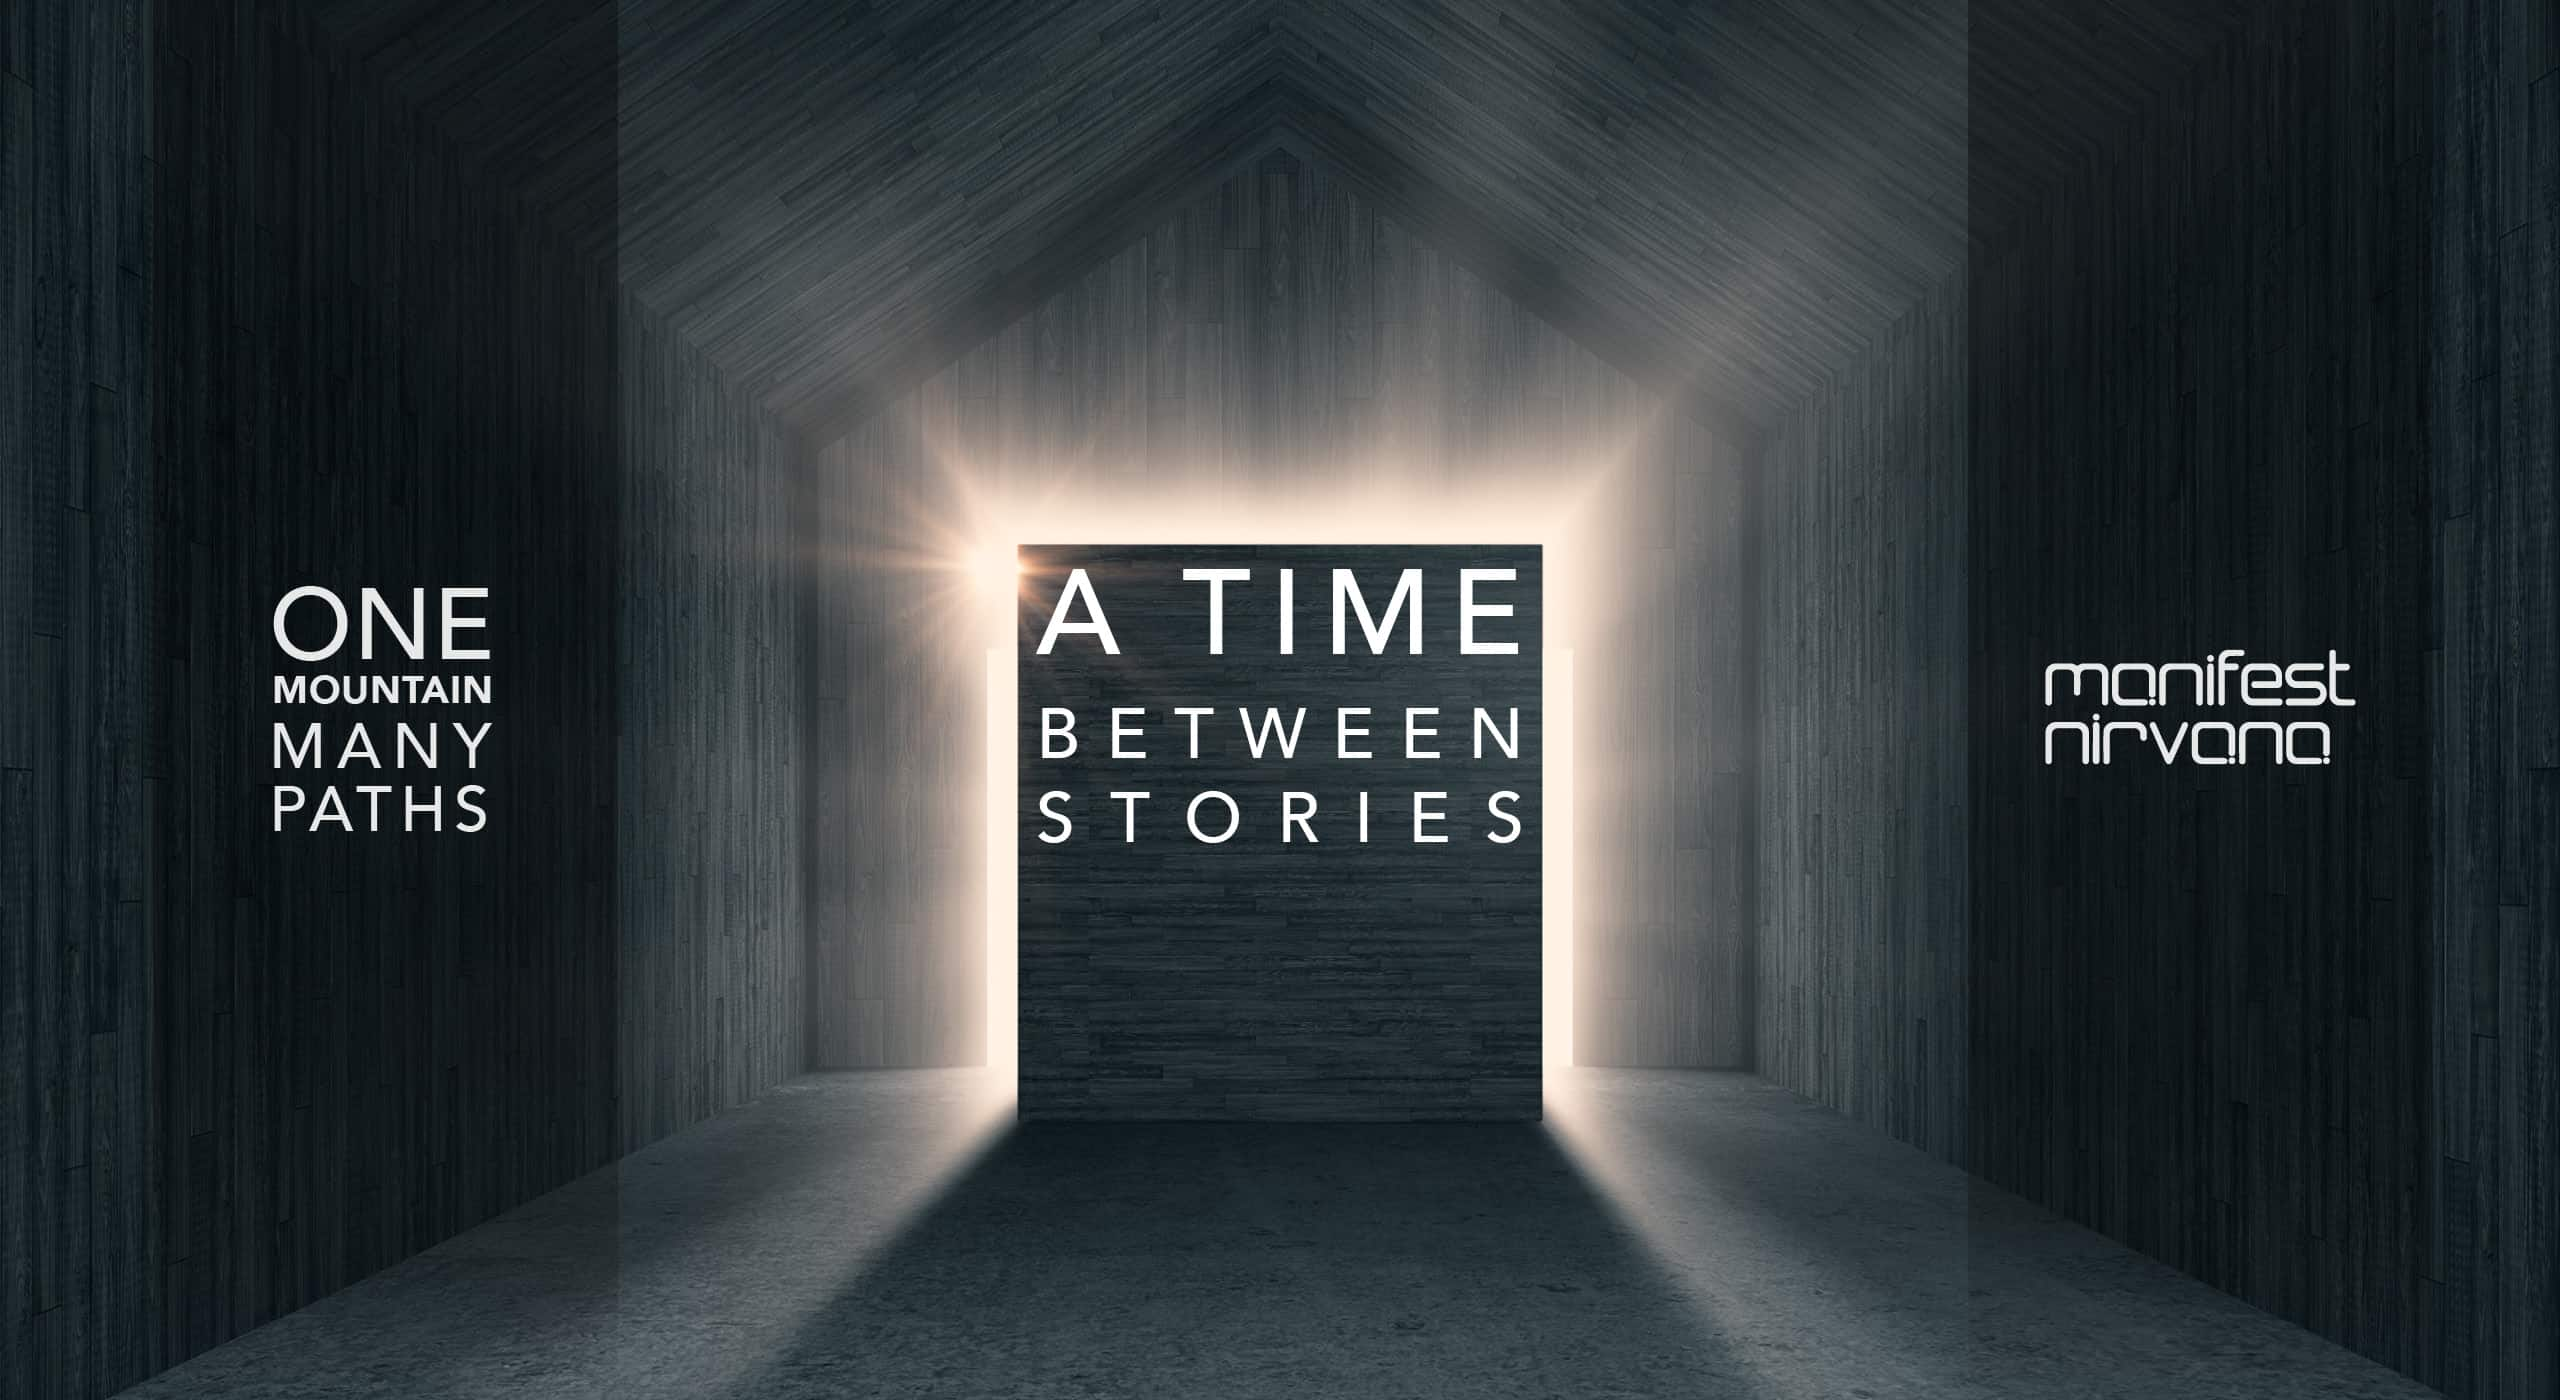 A Time Between Stories